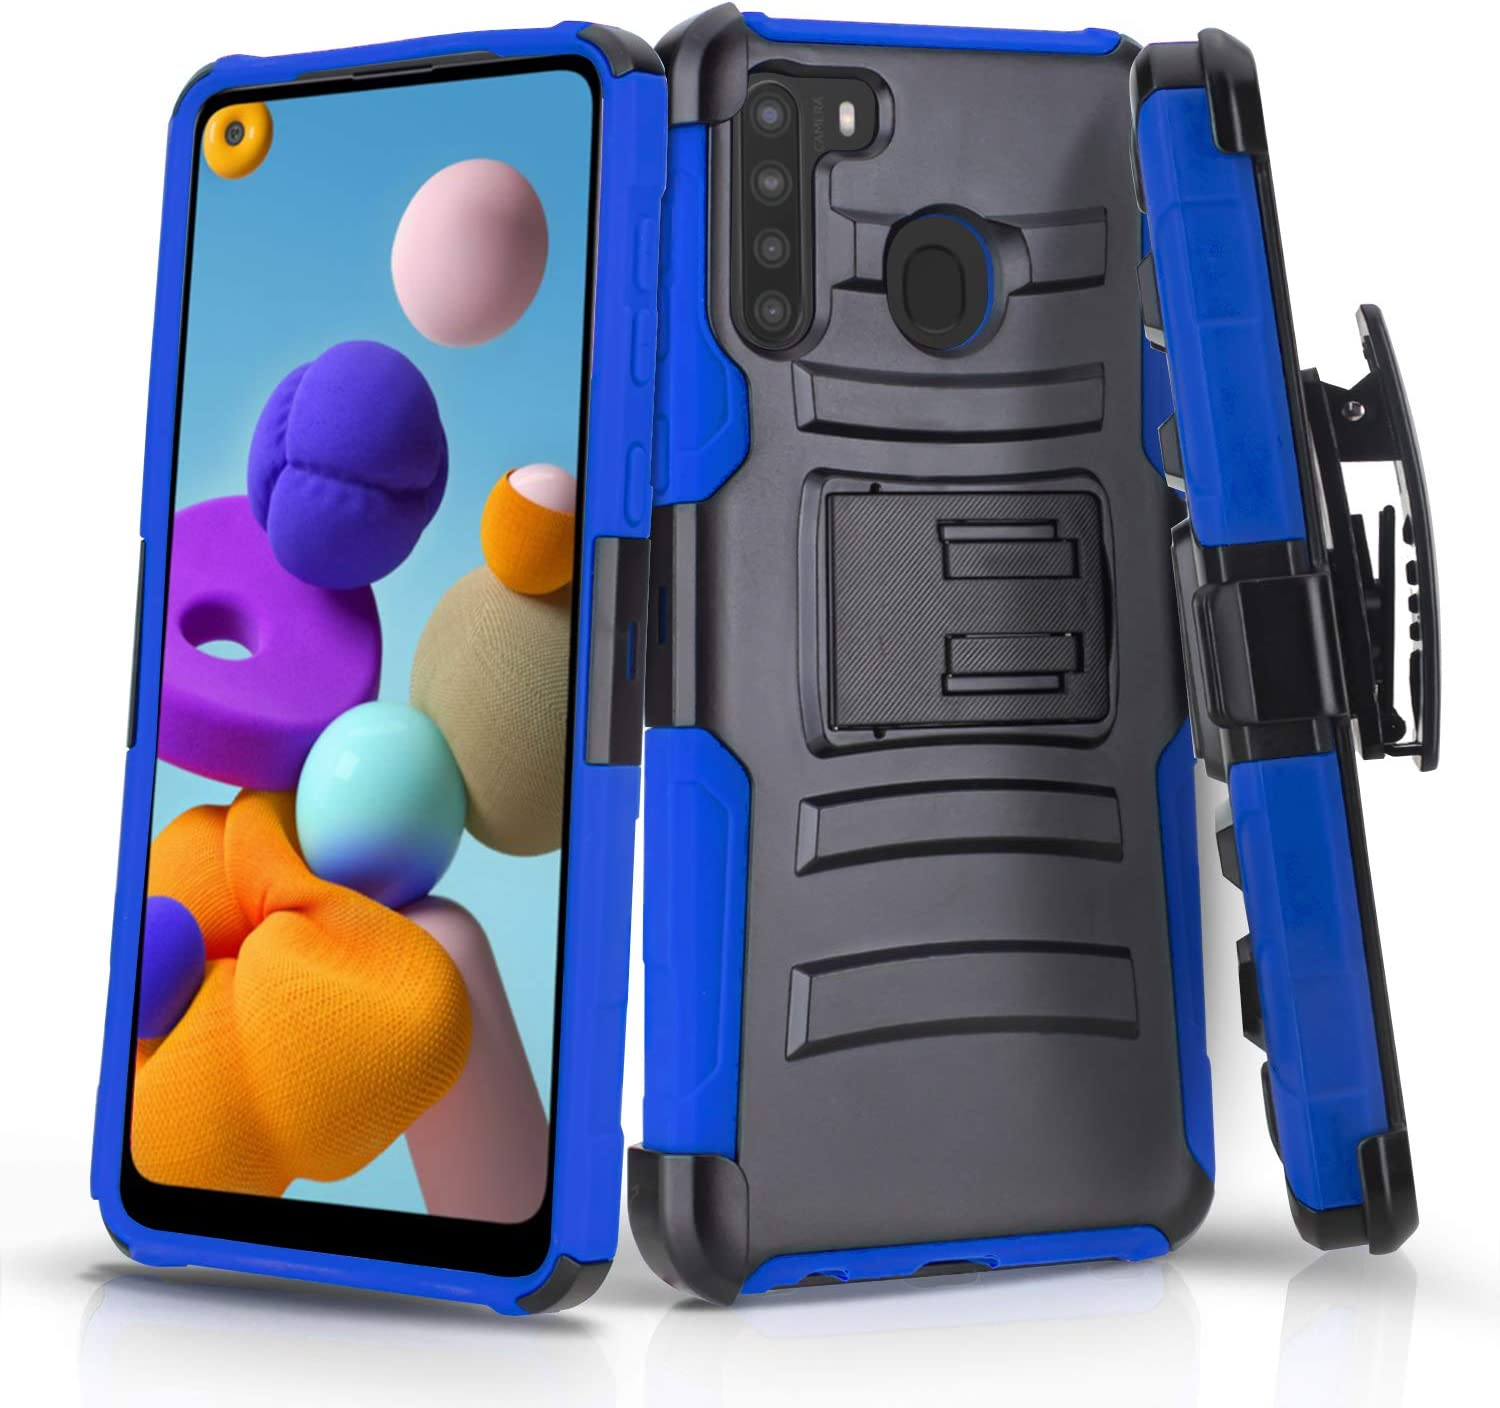 CasemartUSA Phone Case for [Samsung Galaxy A21], [Refined Series][Blue] Shockproof Cover with Built-in Kickstand & Belt Clip Holster for Samsung Galaxy A21 (Verzion, Boost Mobile, T-Mobile, Metro)